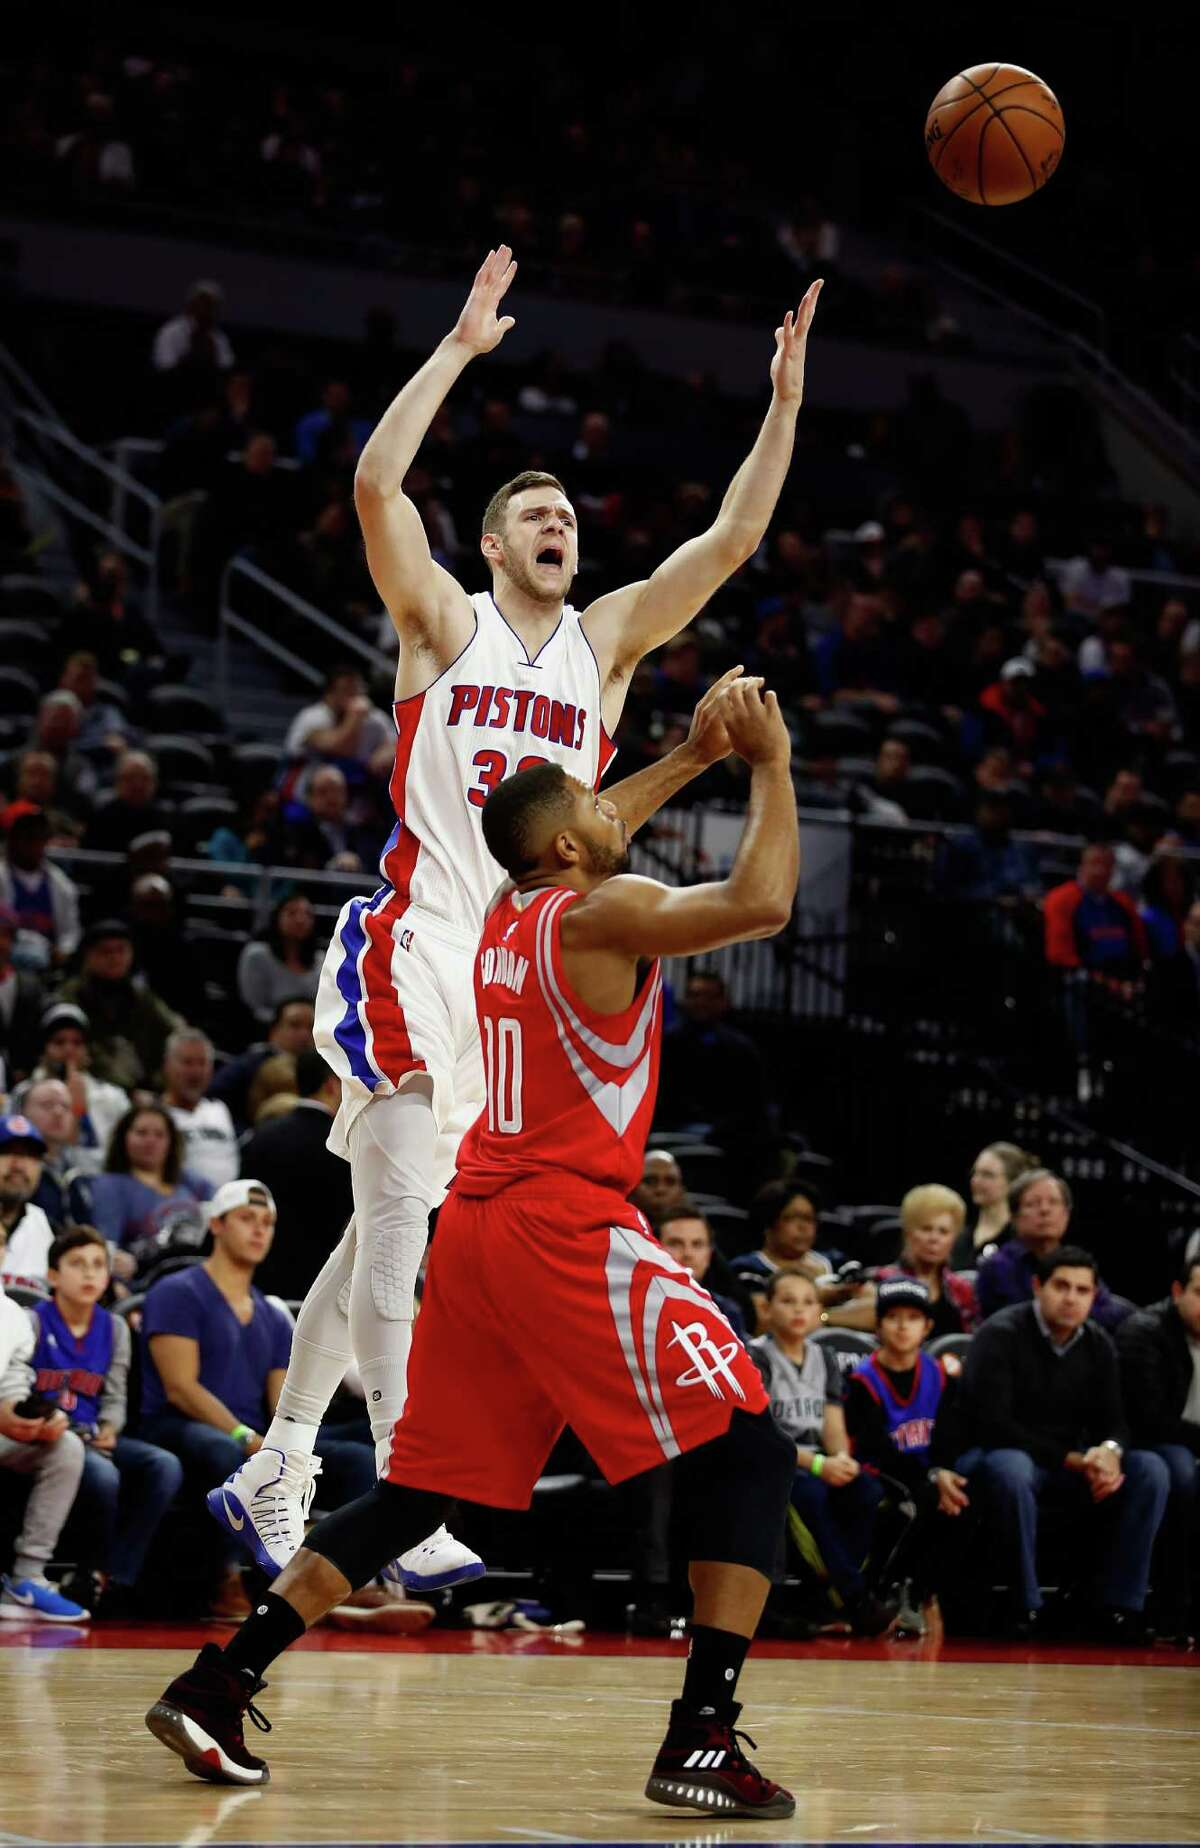 AUBURN HILLS, MI - NOVEMBER 21: Jon Leuer #30 of the Detroit Pistons battles for a rebound with Eric Gordon #10 of the Houston Rockets during the first half at the Palace of Auburn Hills on November 21, 2016 in Auburn Hills, Michigan. NOTE TO USER: User expressly acknowledges and agrees that, by downloading and or using this photograph, User is consenting to the terms and conditions of the Getty Images License Agreement.